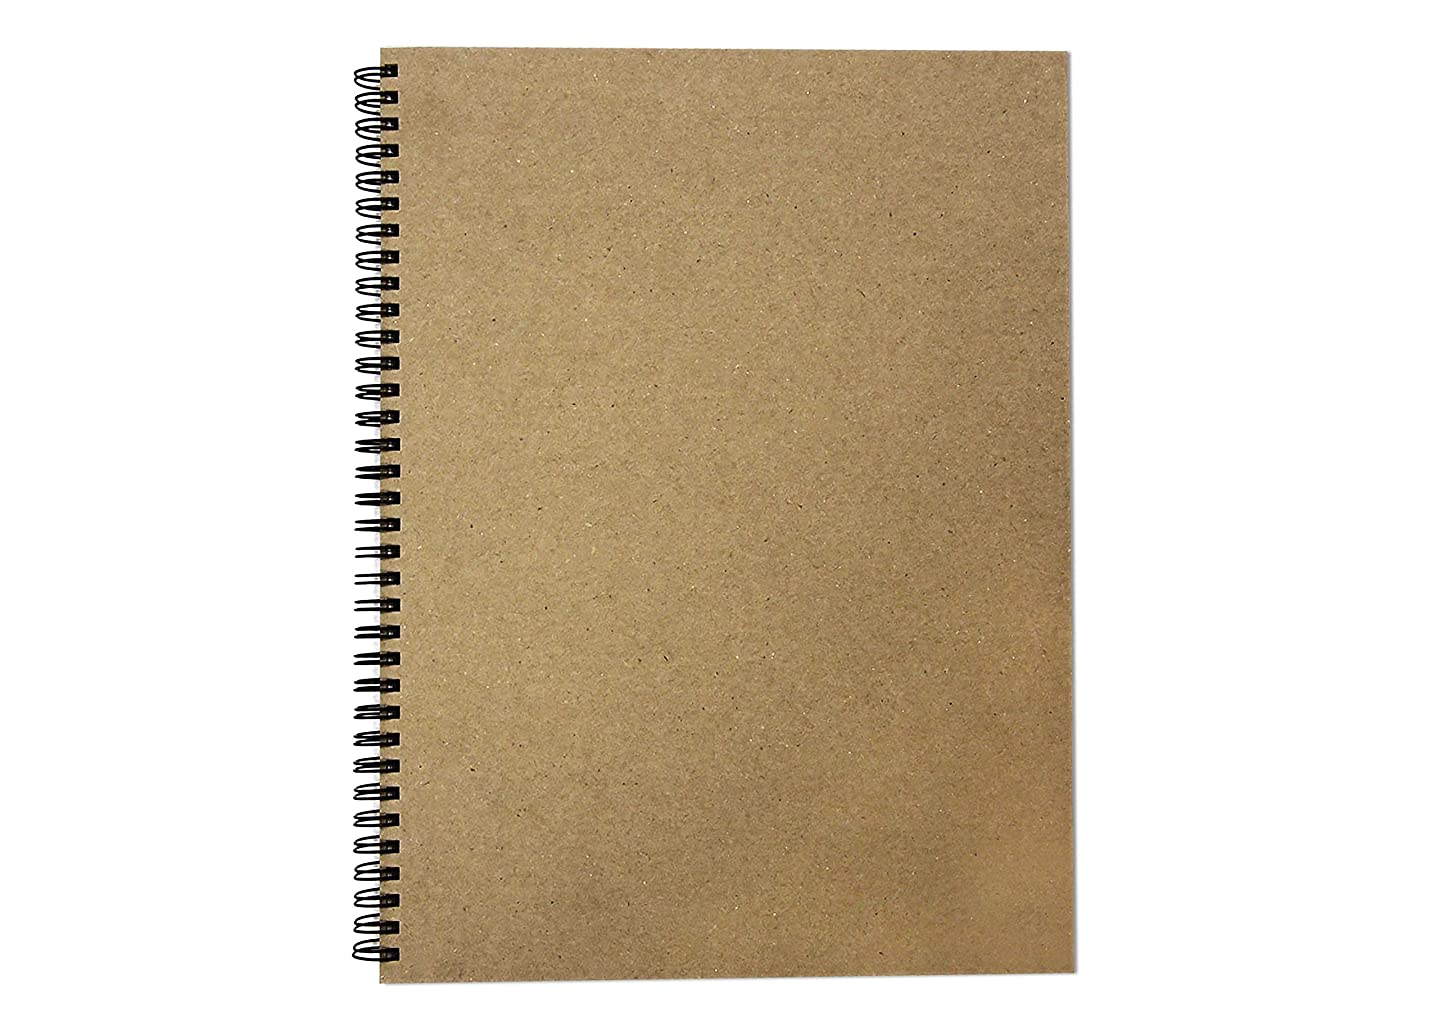 8.3 x 11.7 (A4) (Portrait) Recycled Sketch Book, 40 Sheets (80 Sides) of 170gsm Recycled Cartridge Paper, Recycled Hard Covers